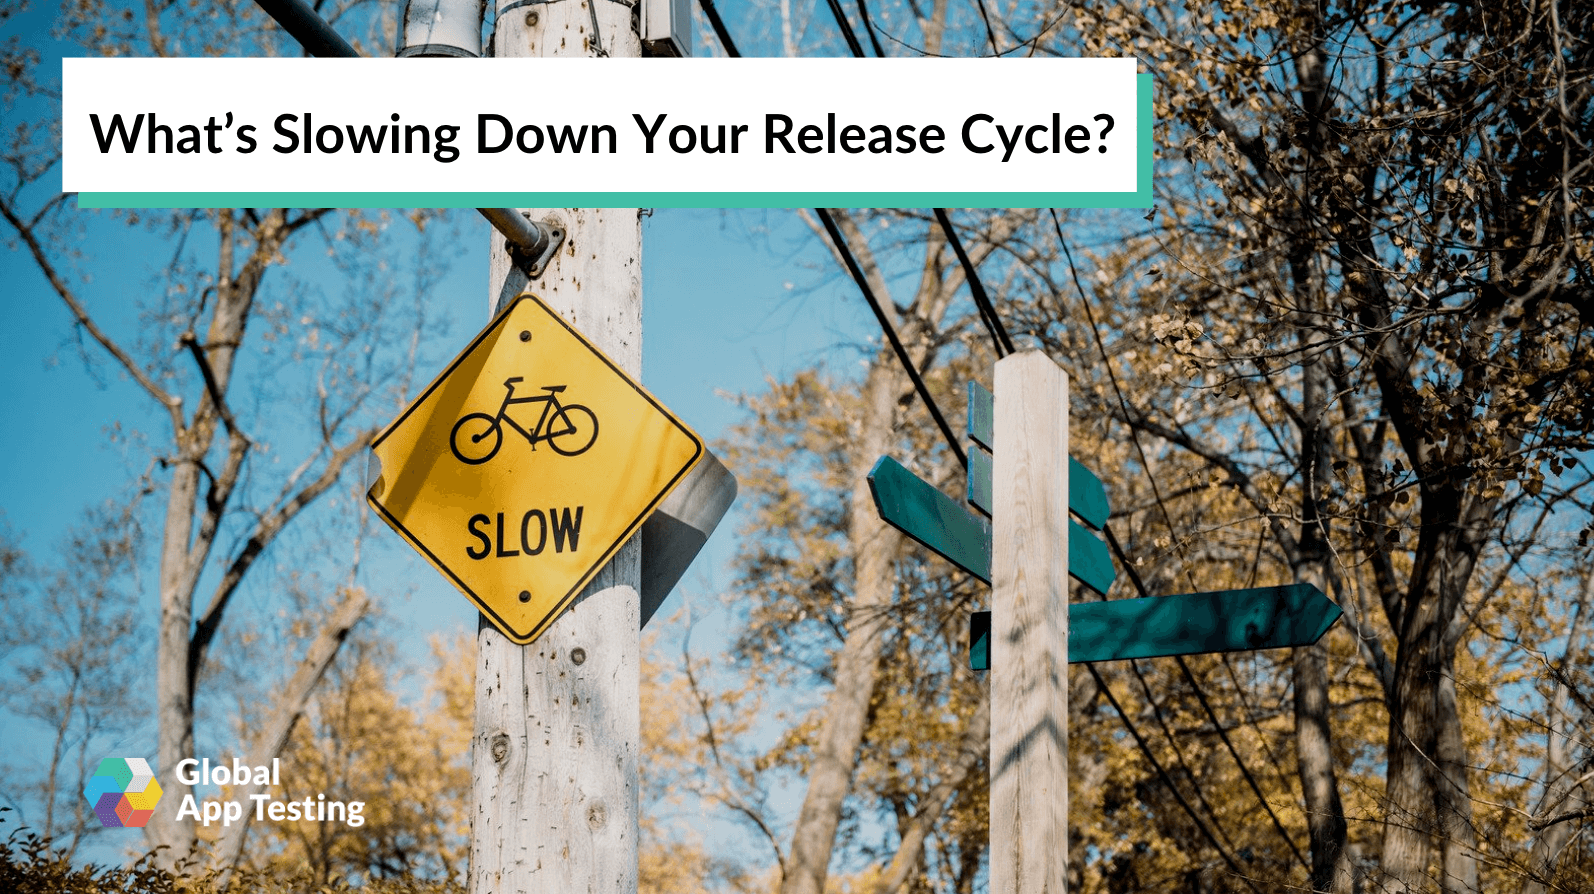 What's Slowing Down Your Release Cycle?